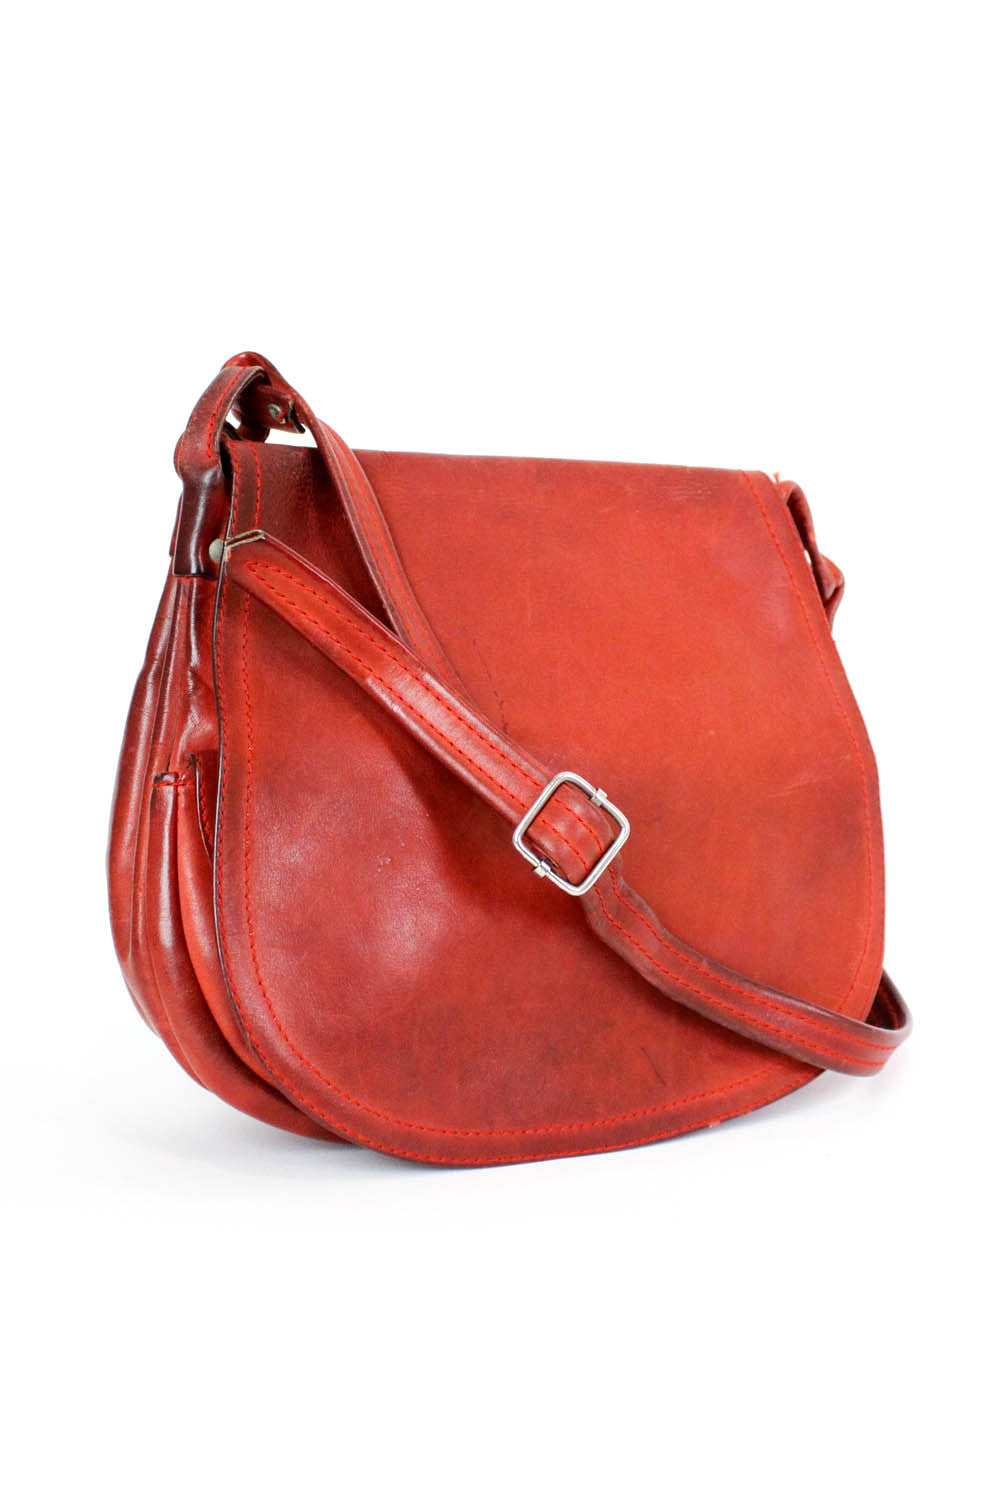 70s Rust Leather Saddle Bag